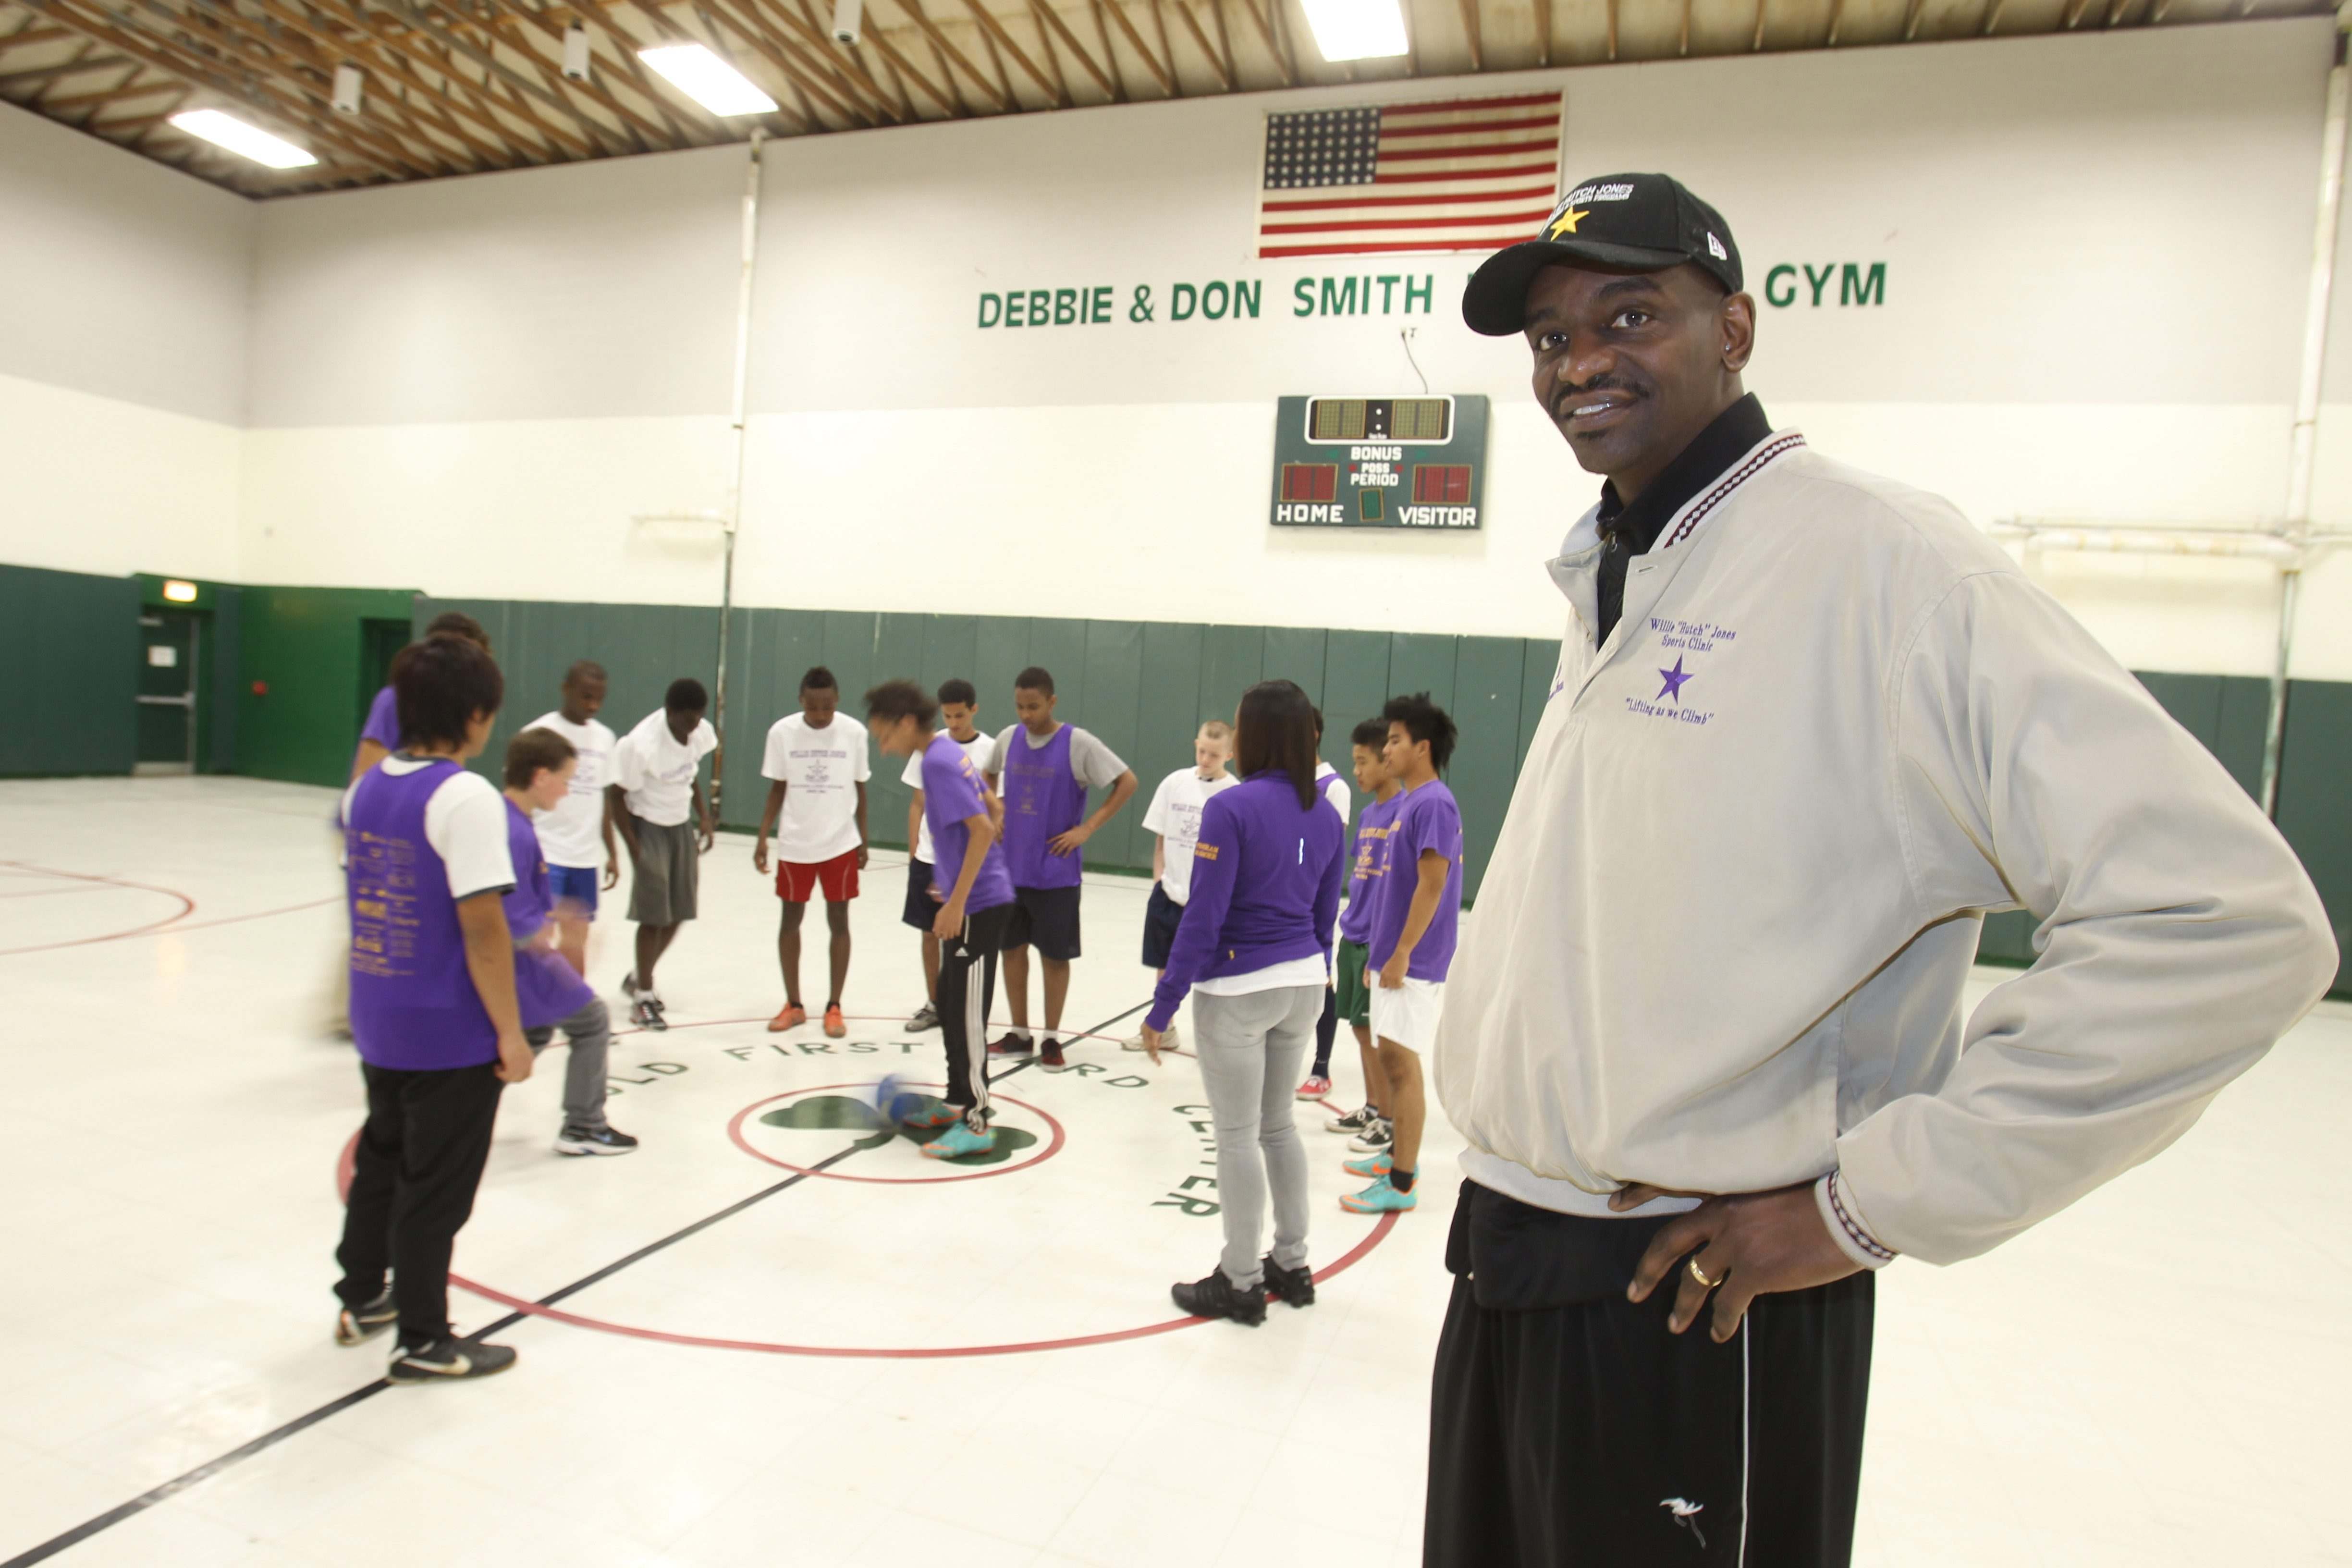 Willie Hutch Jones has established free summer programs for area youth that teach discipline and sportsmanship.